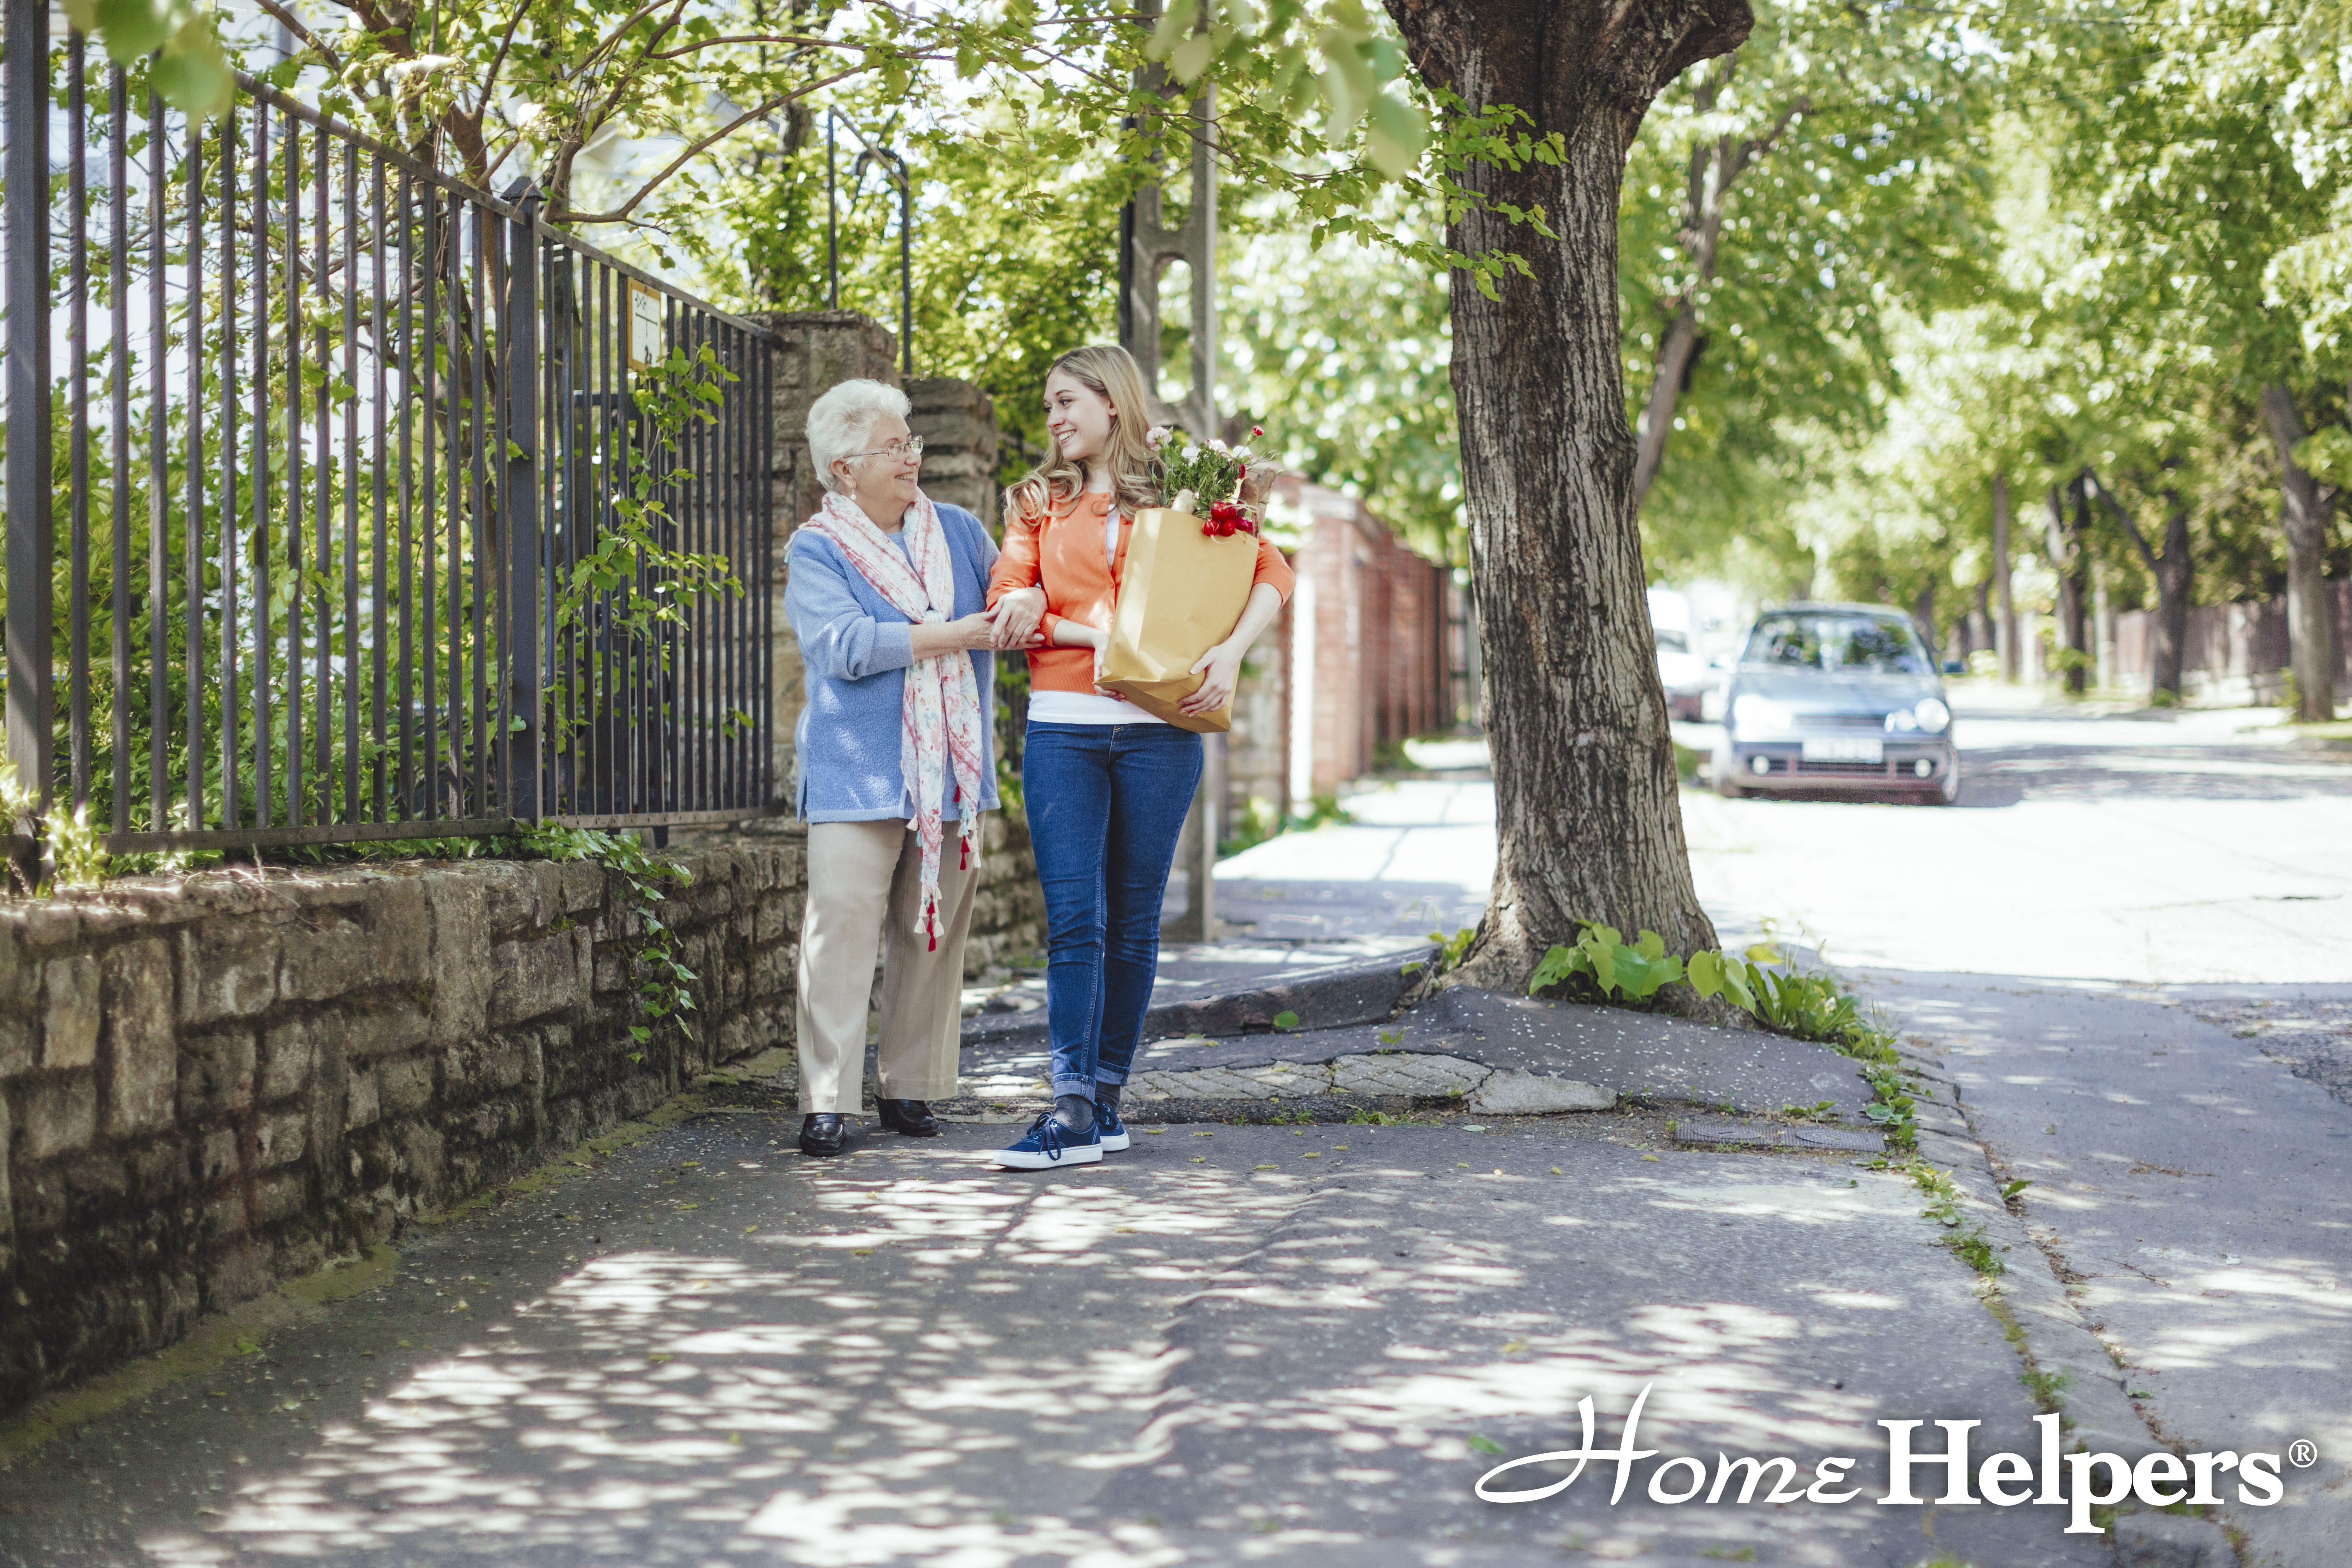 Home Helpers caregiver and client walking home with grocery bags